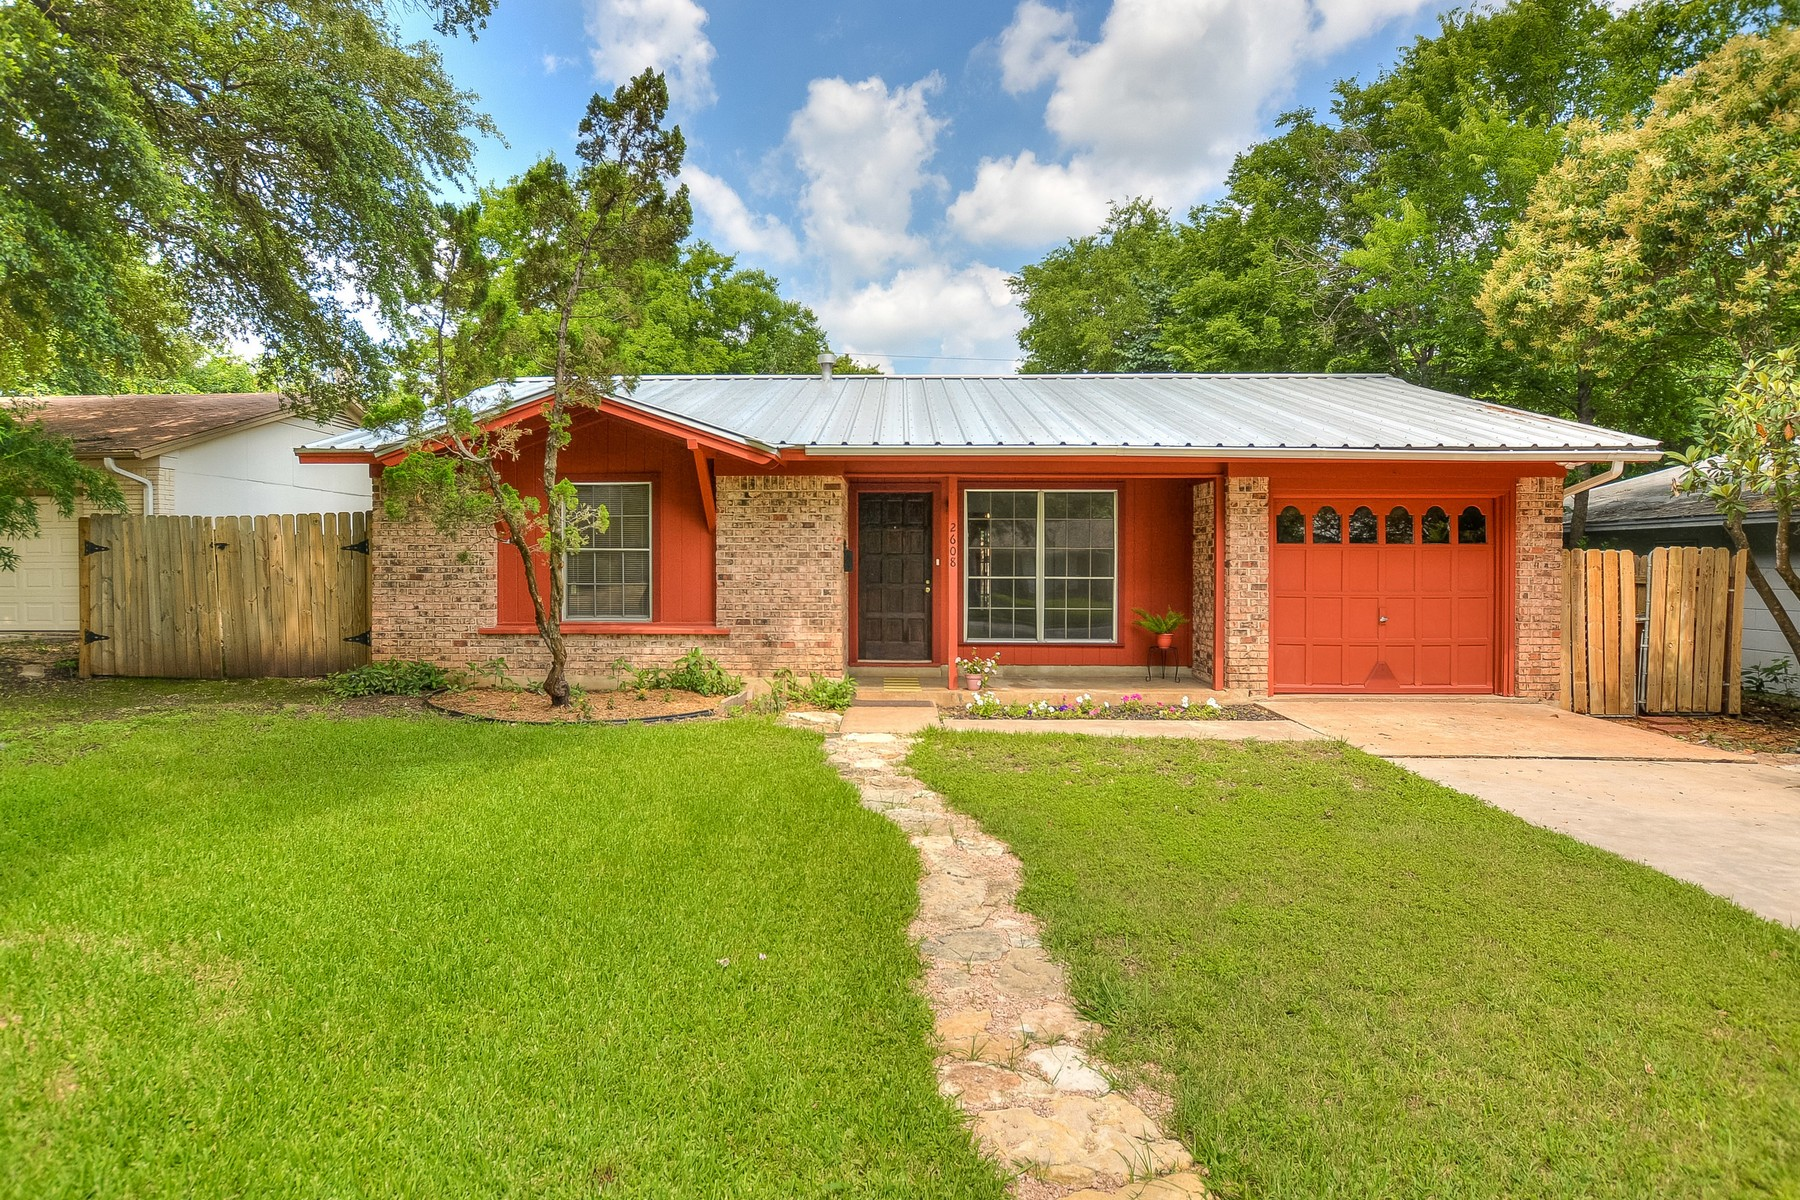 Single Family Home for Sale at Cute One Story Ranch Style Home 2608 East Side Dr Austin, Texas 78704 United States